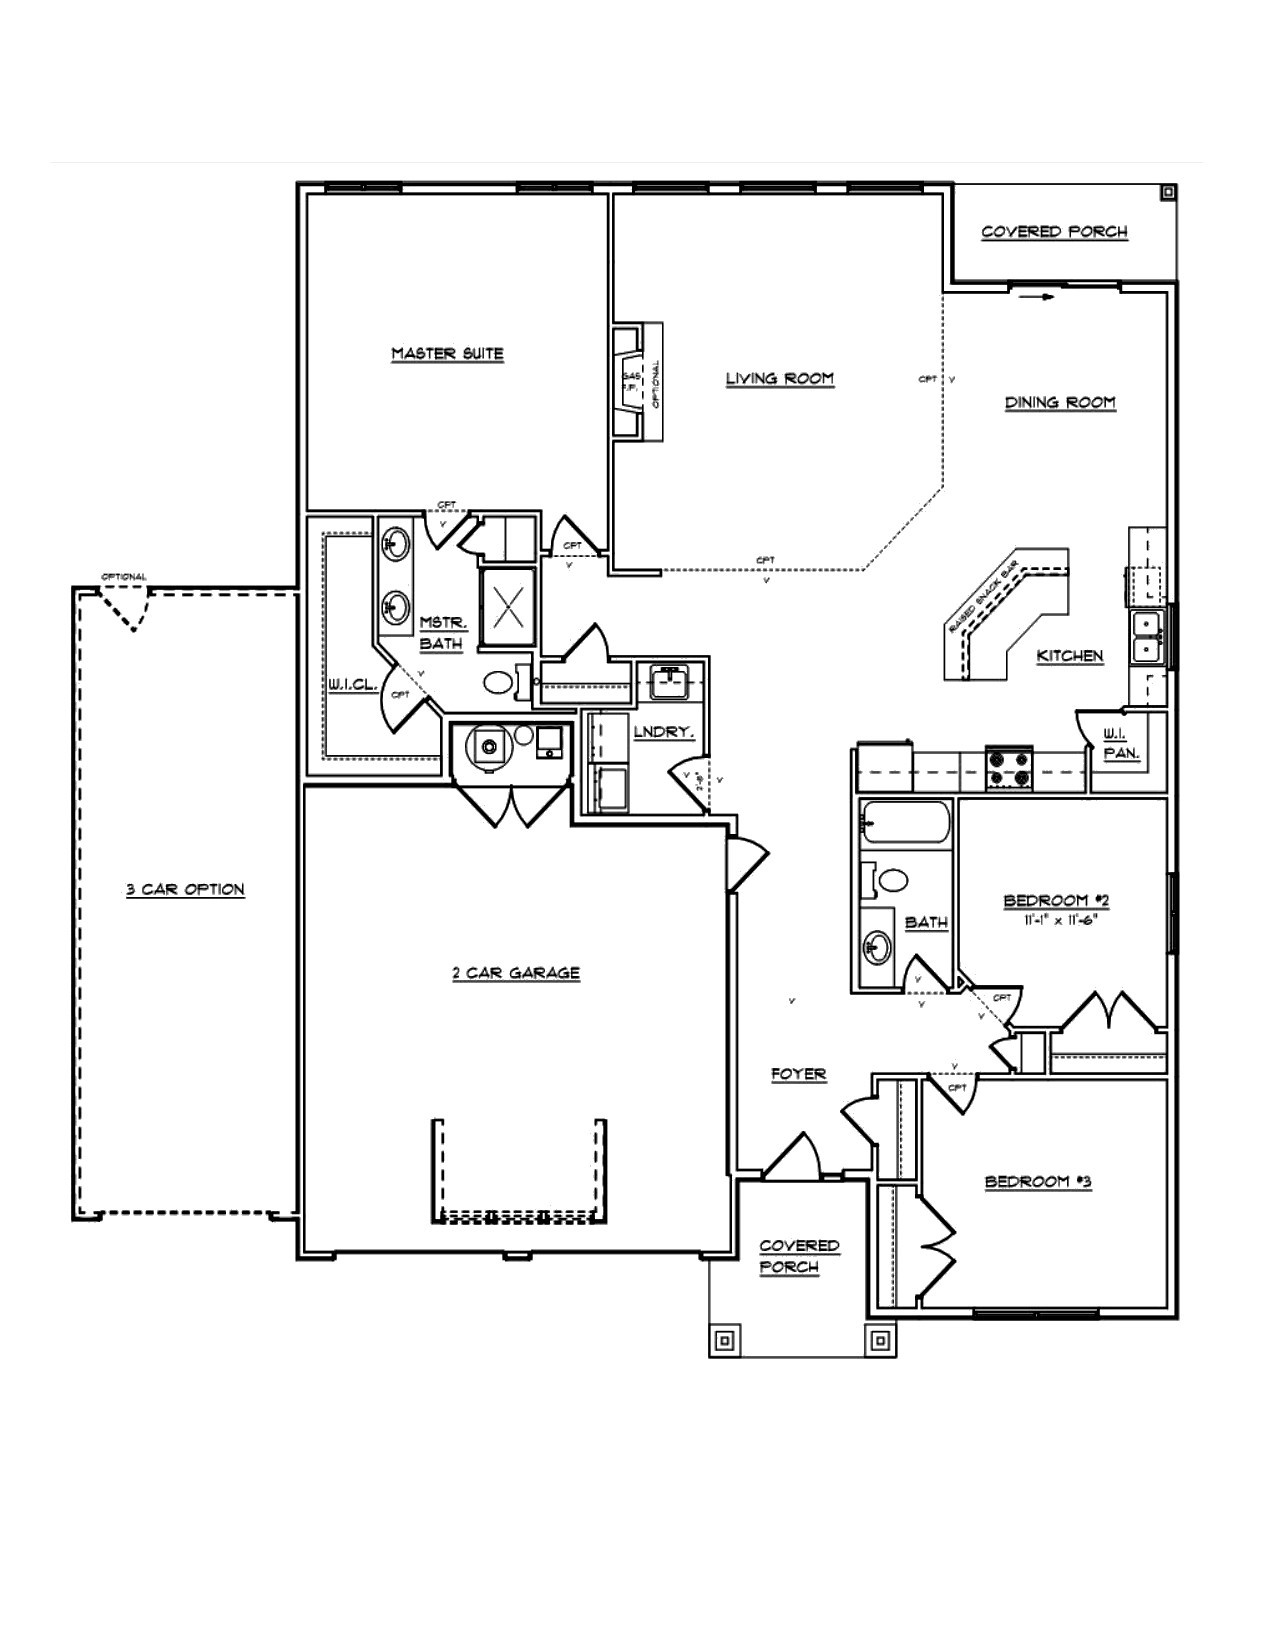 Plan 1981 aho northwest for Aho construction floor plans